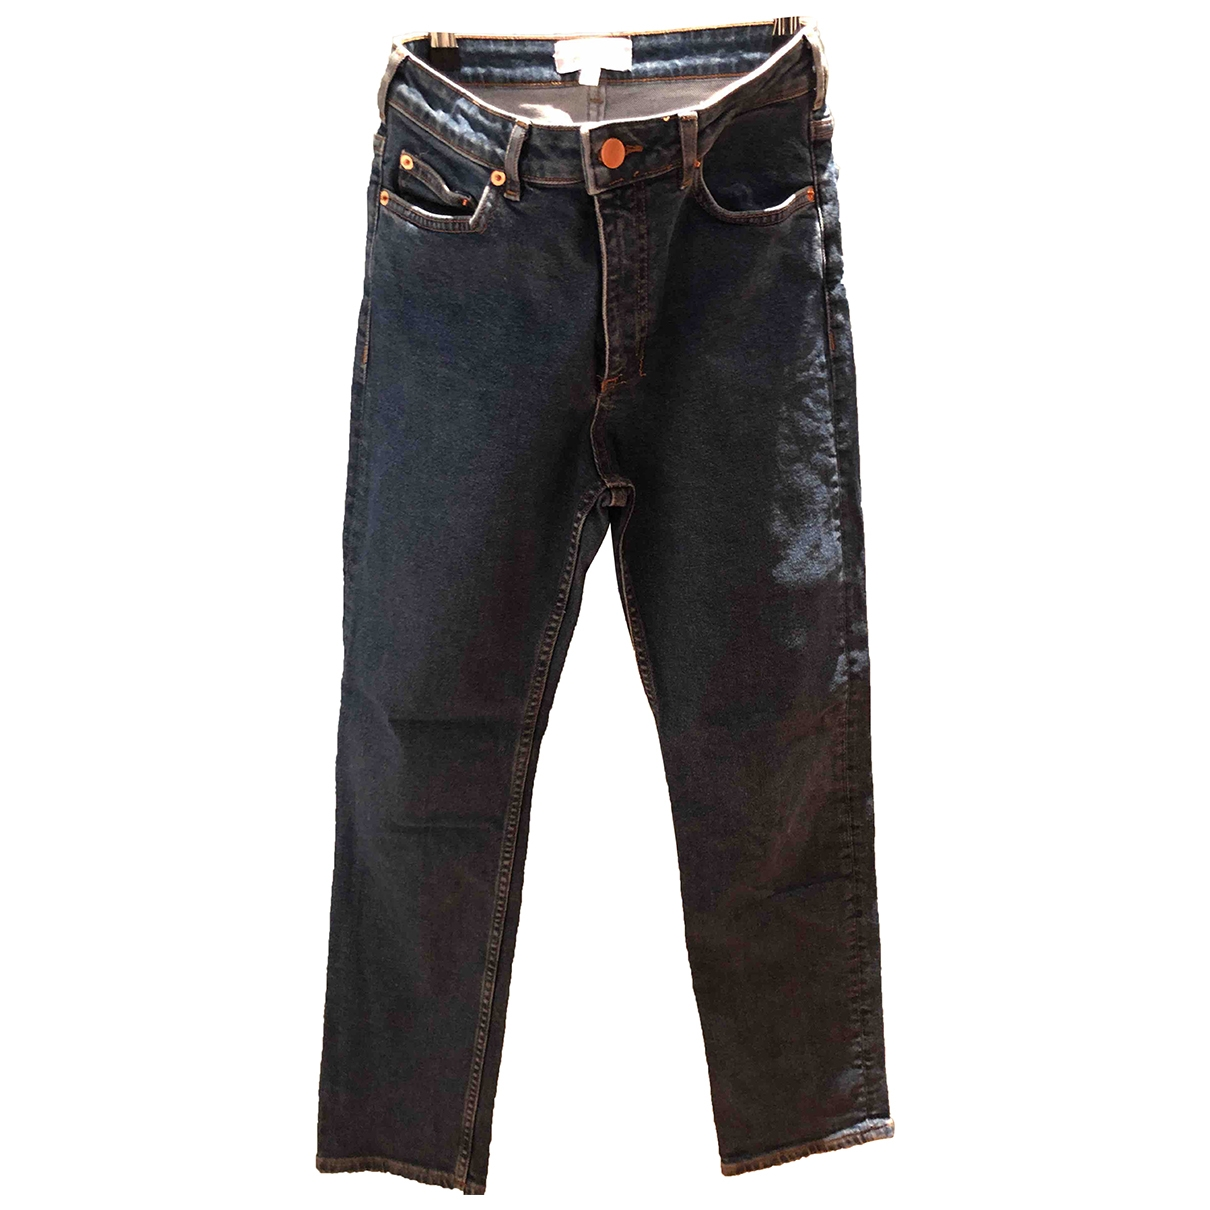 & Stories \N Blue Cotton - elasthane Jeans for Women 27 US